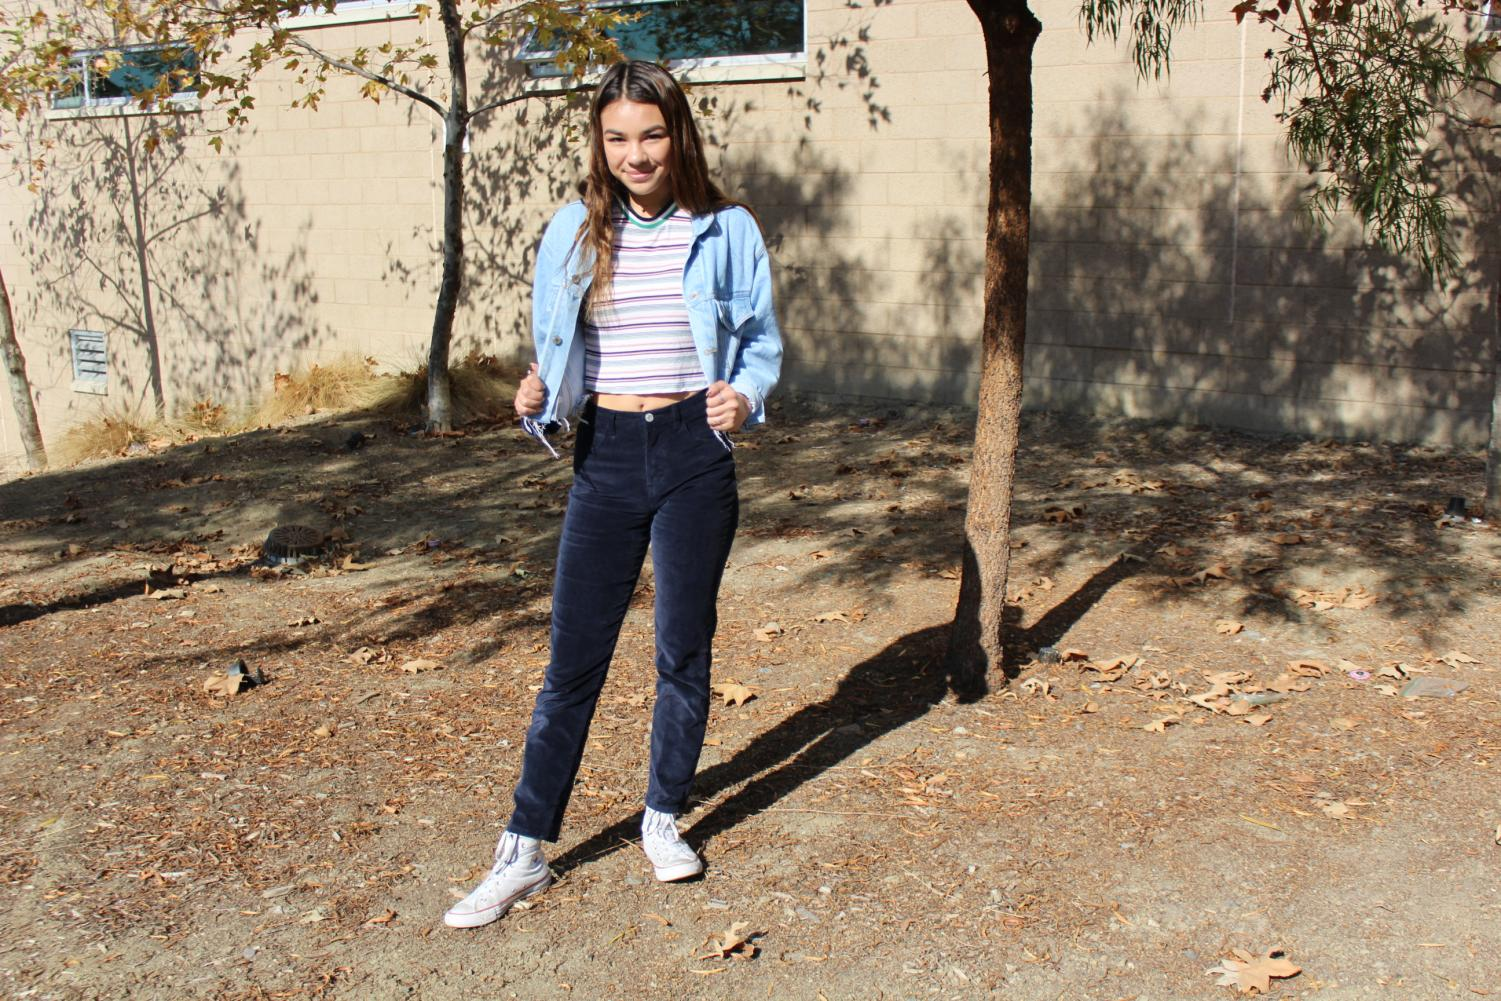 Sophomore+Sarah+Ewers+rocks+her+flawlessly+coordinated+blue+scheme.+Ewers+enjoys+wearing+whatever+she+feels+is+comfortable+and+looks+good.+Her+prefered+stores+include+places+such+as+Brandy+Melville%2C+Urban+Outfitters%2C+Thrift+Stores%2C+and+Target.